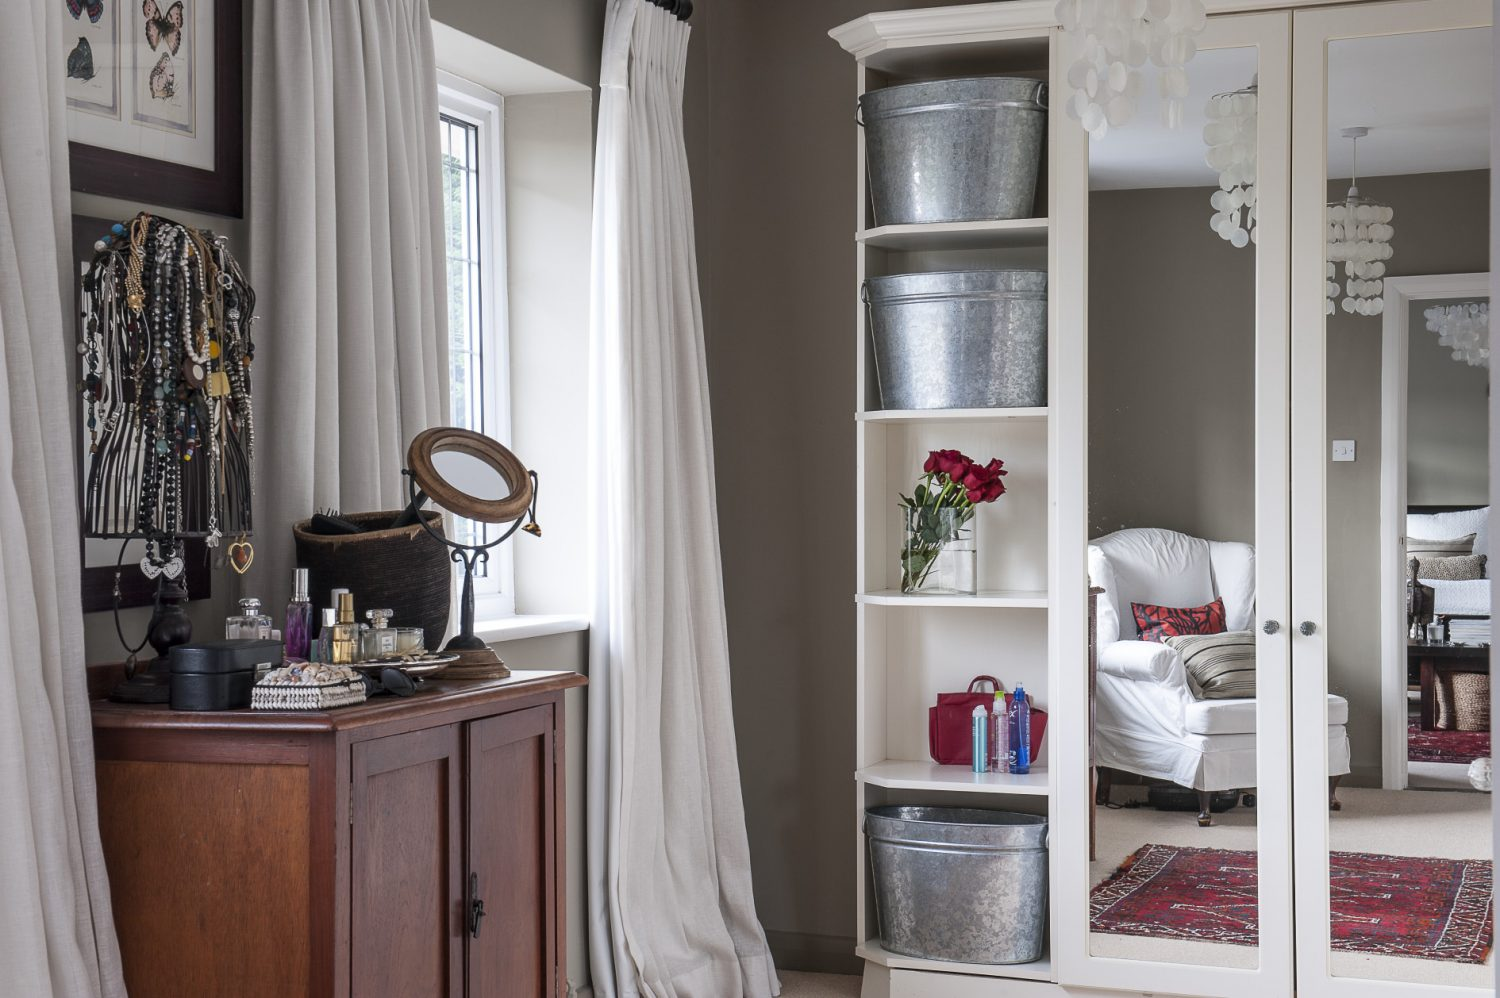 The bright dressing room provides ample storage for clothes and accessories